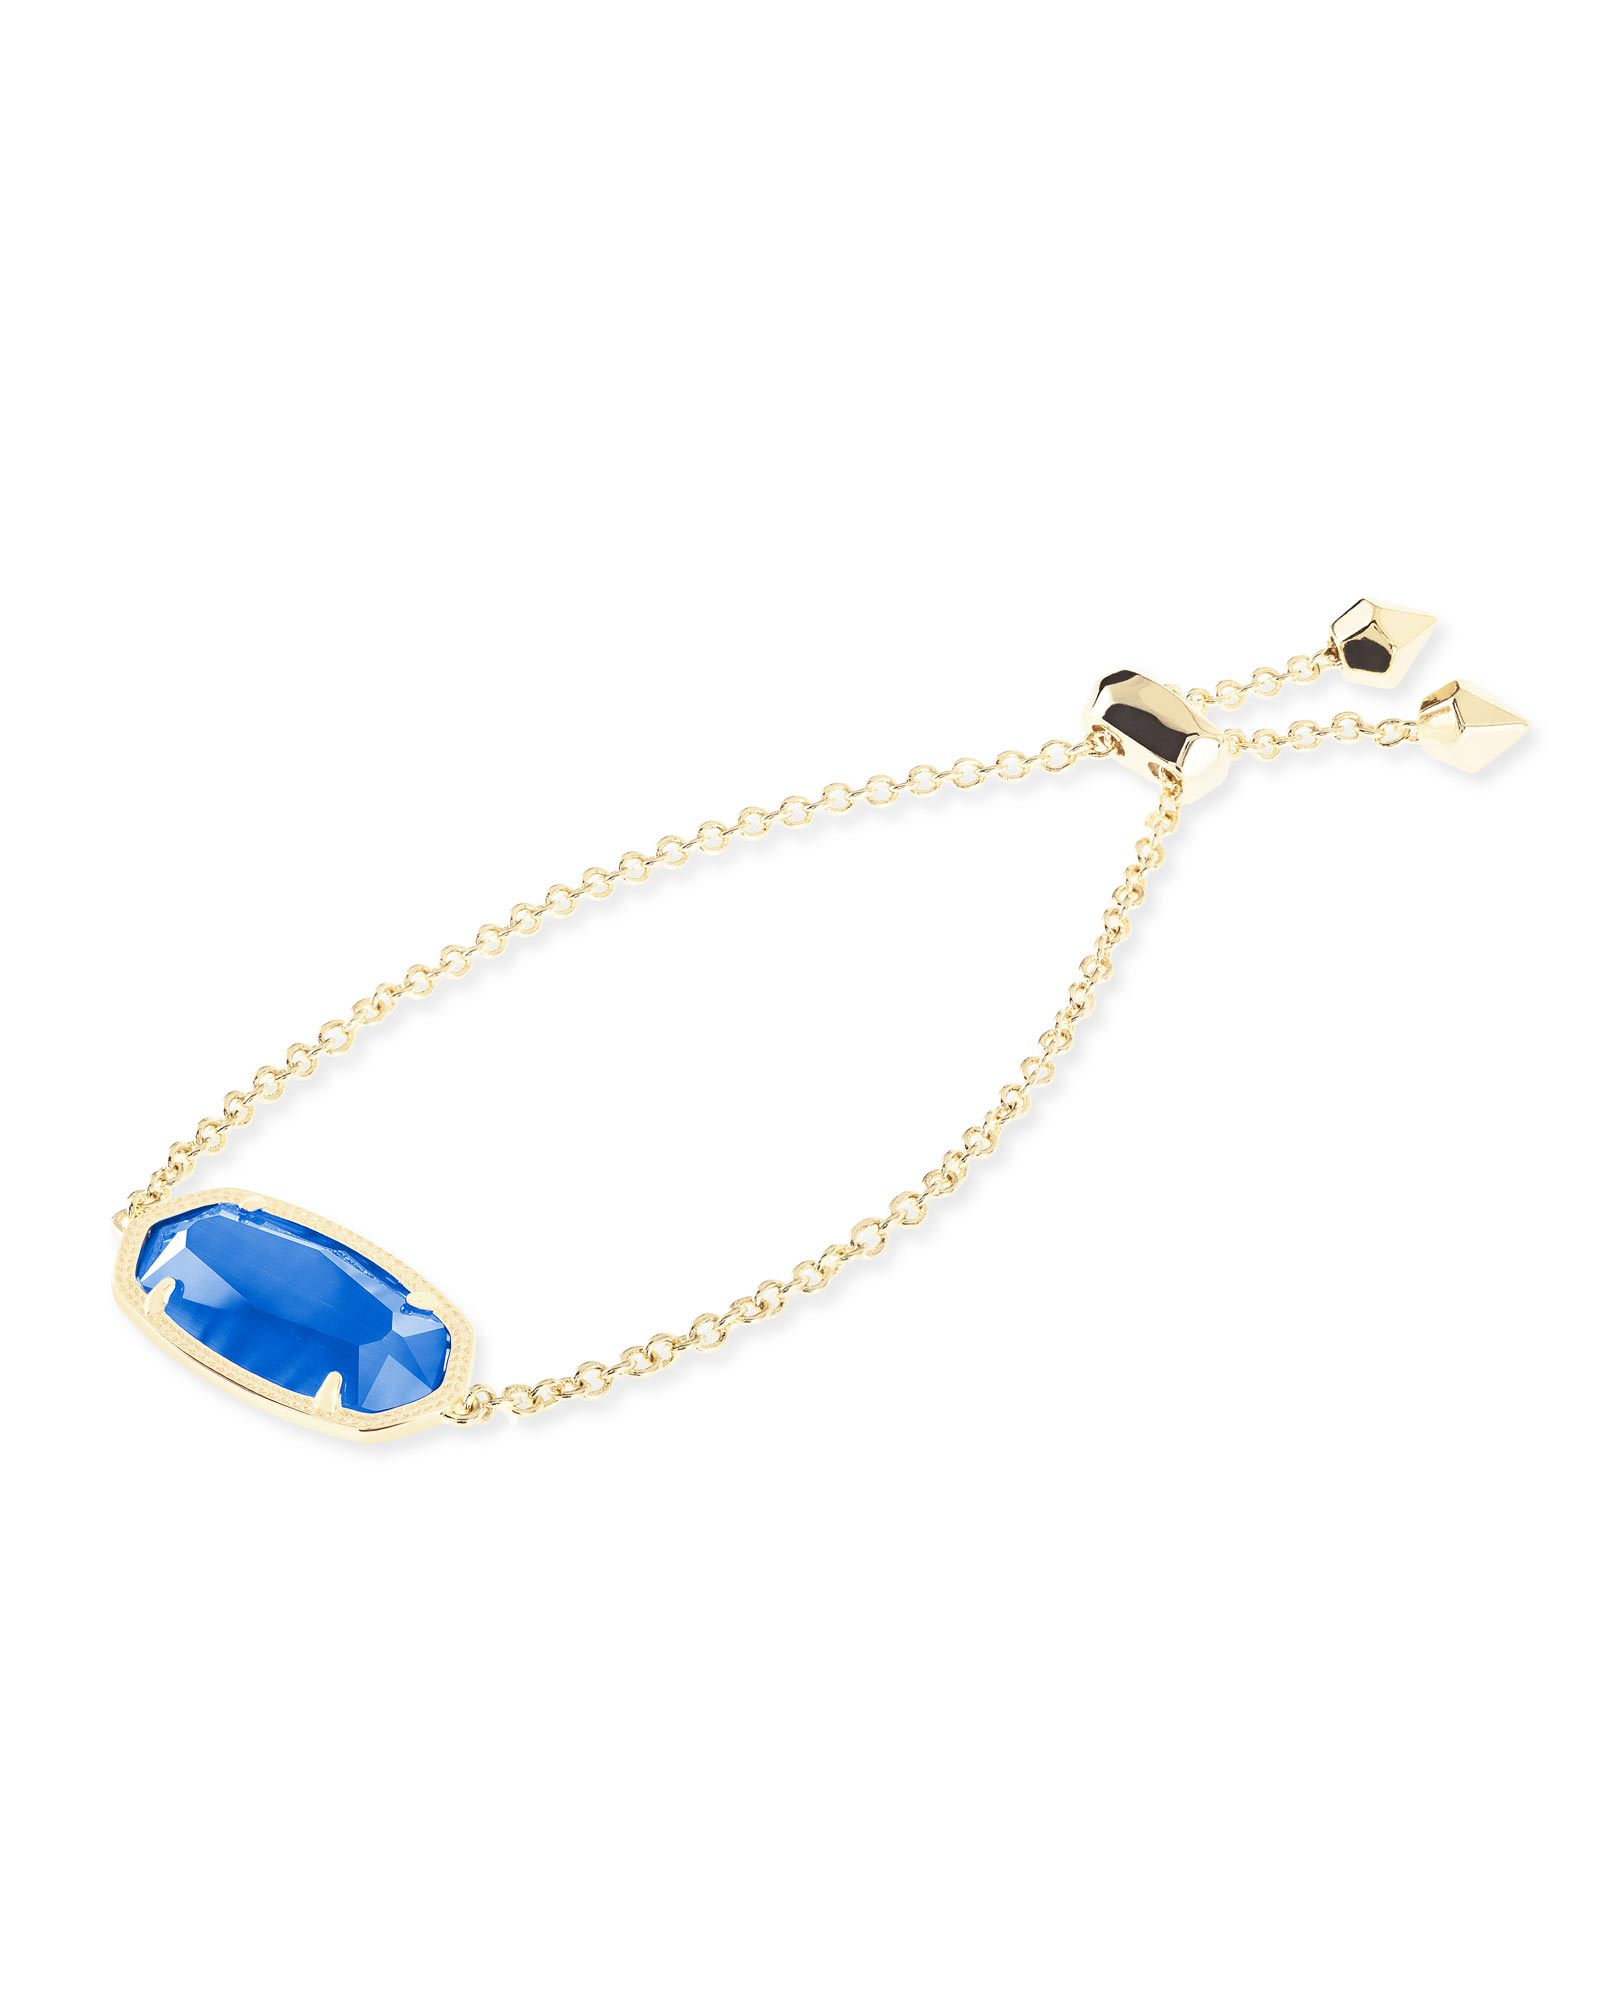 Daisy Adjustable Chain Bracelet in Cobalt